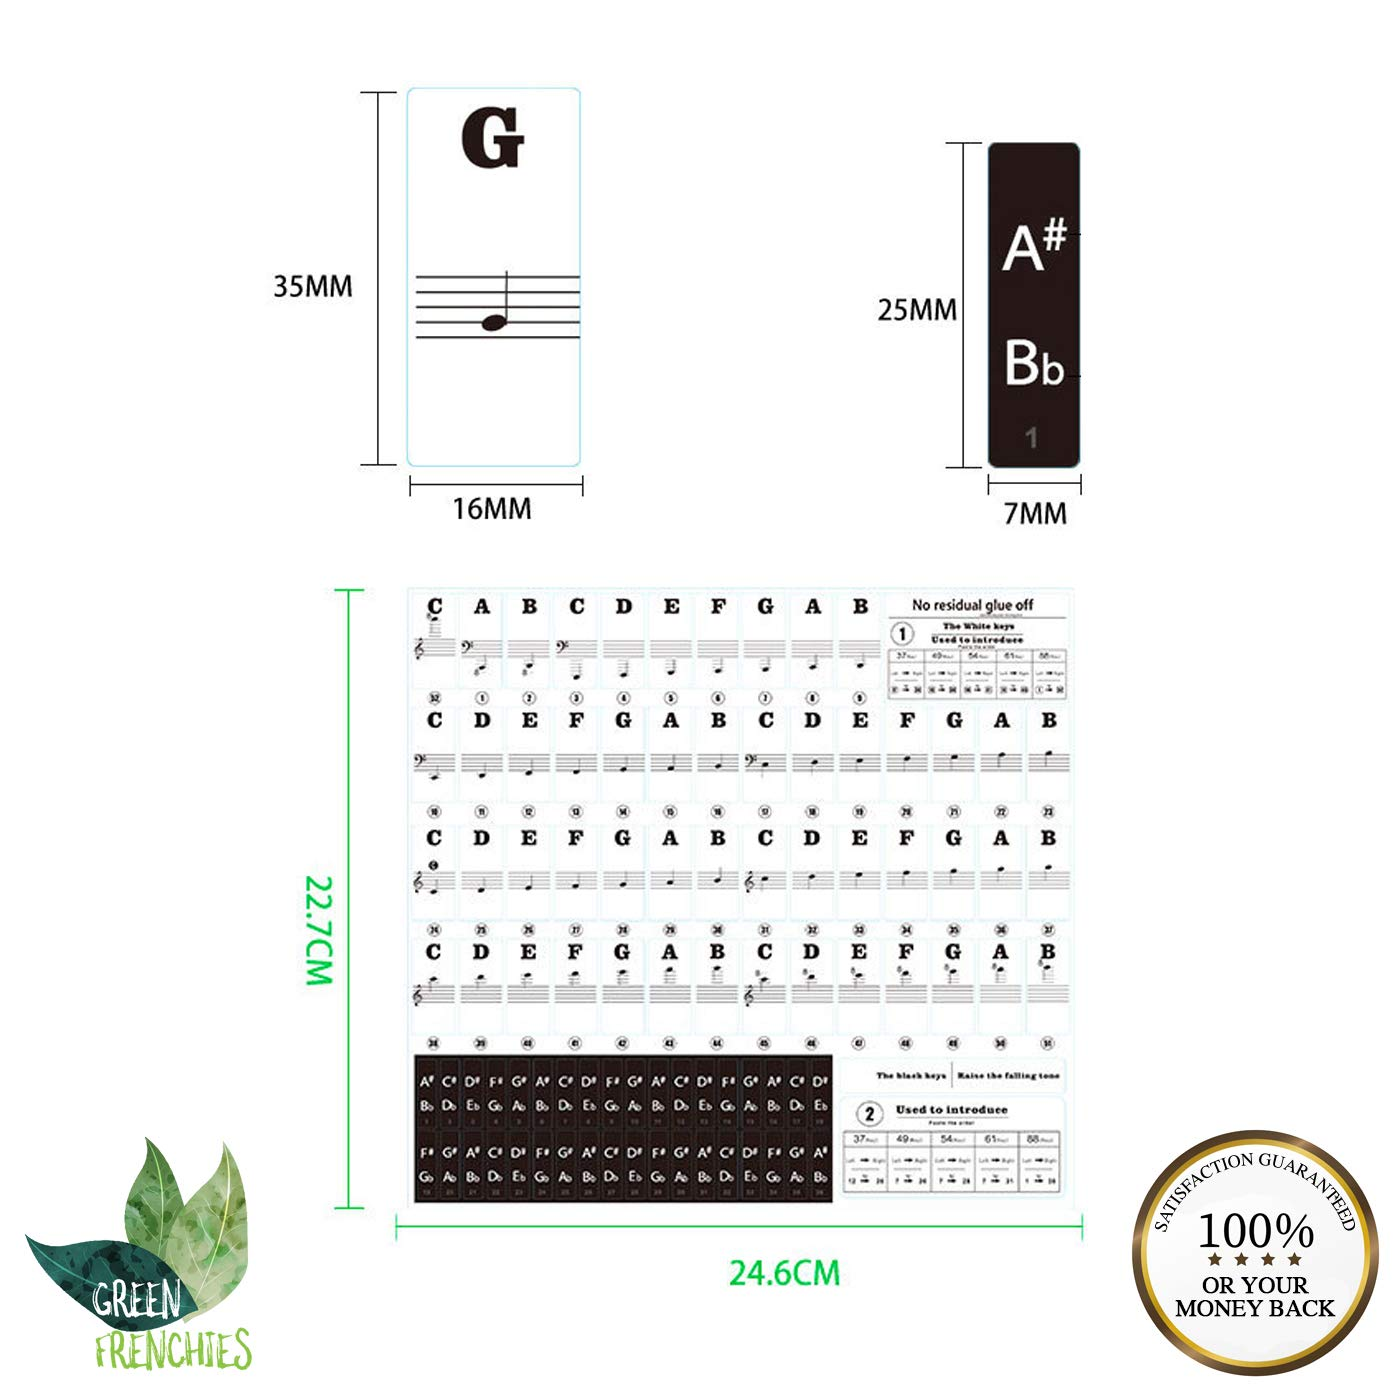 Green Frenchies G.F. Piano Keyboard Stickers, Transparent Stickers for White and Black Keys, Removable Stickers for 37, 49, 54, 61, and 88 Keys with Instructions by Green Frenchies (Image #5)